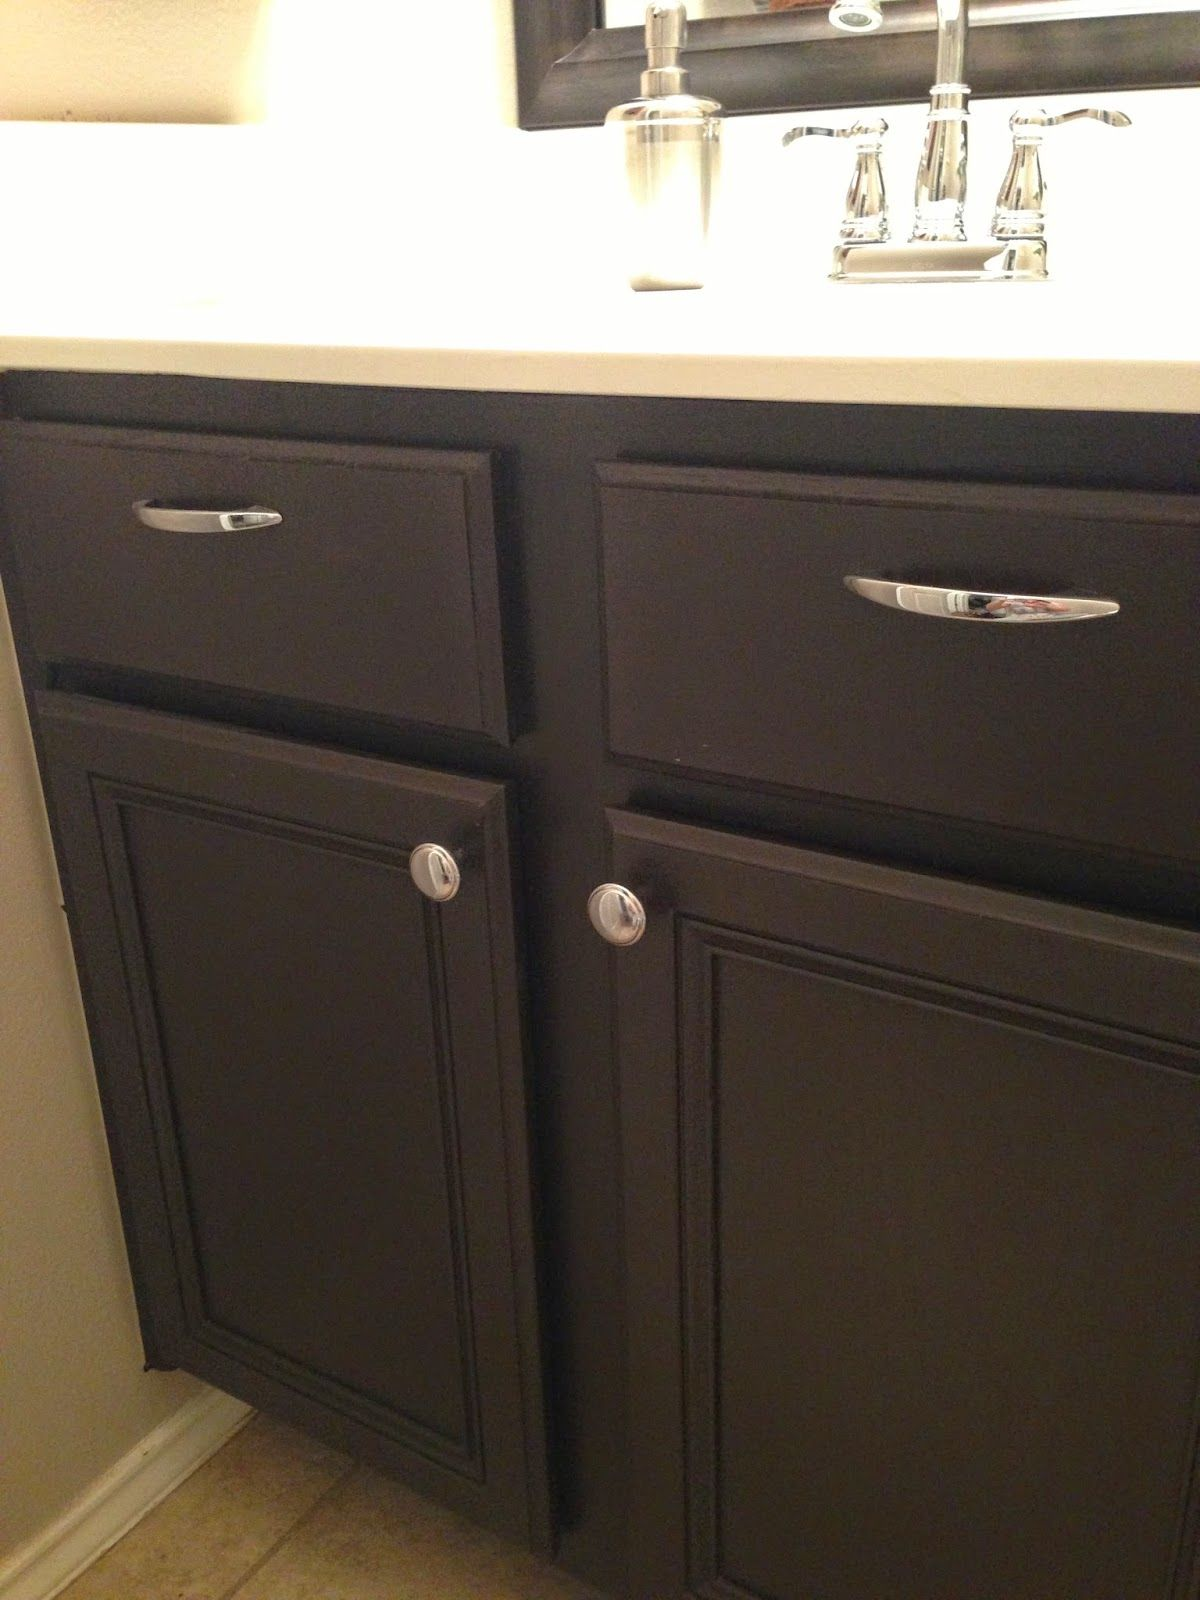 Kona Dark Brown Cabinets In The Powder Room Easy One